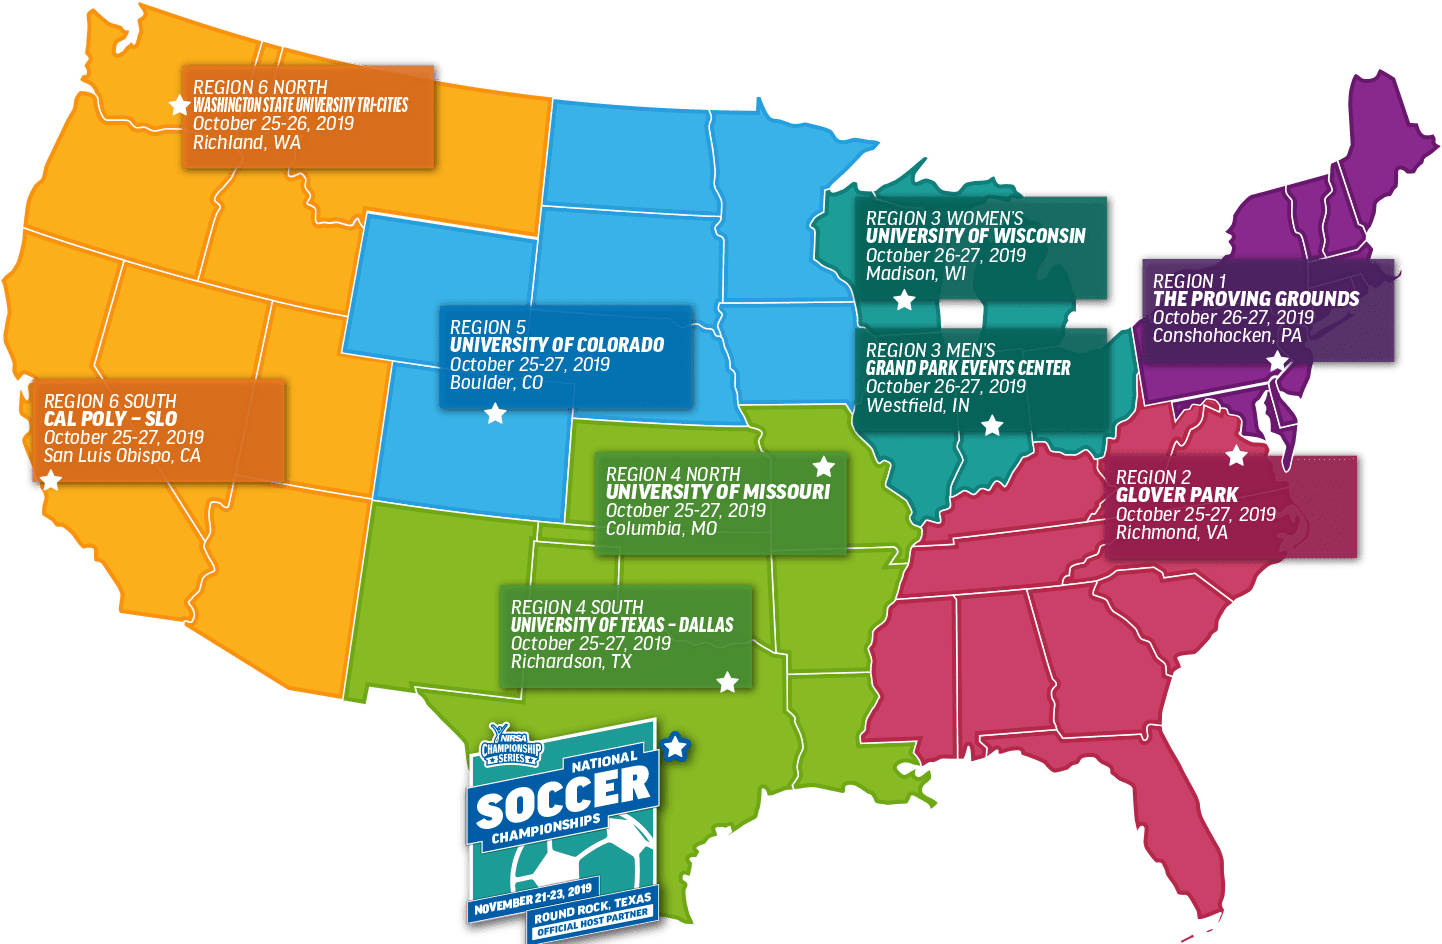 Map of NIRSA Regional Soccer Tournaments in 2019